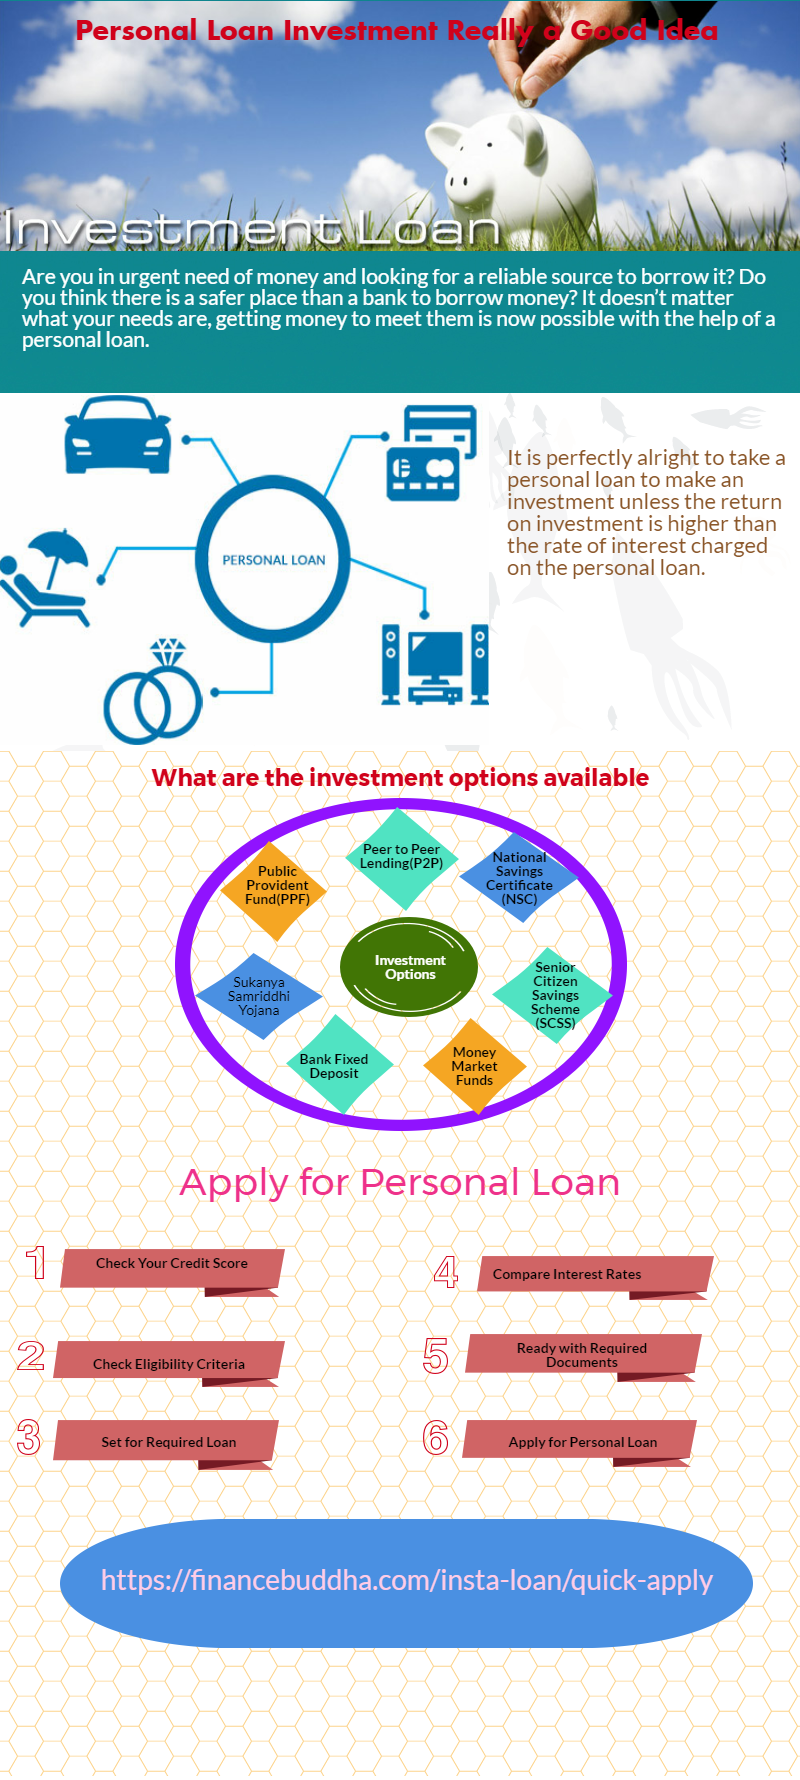 Personal Loan Is So Helpful To Invest For Your Best Future Instant Personal Loan Money Matters Finance How To Apply